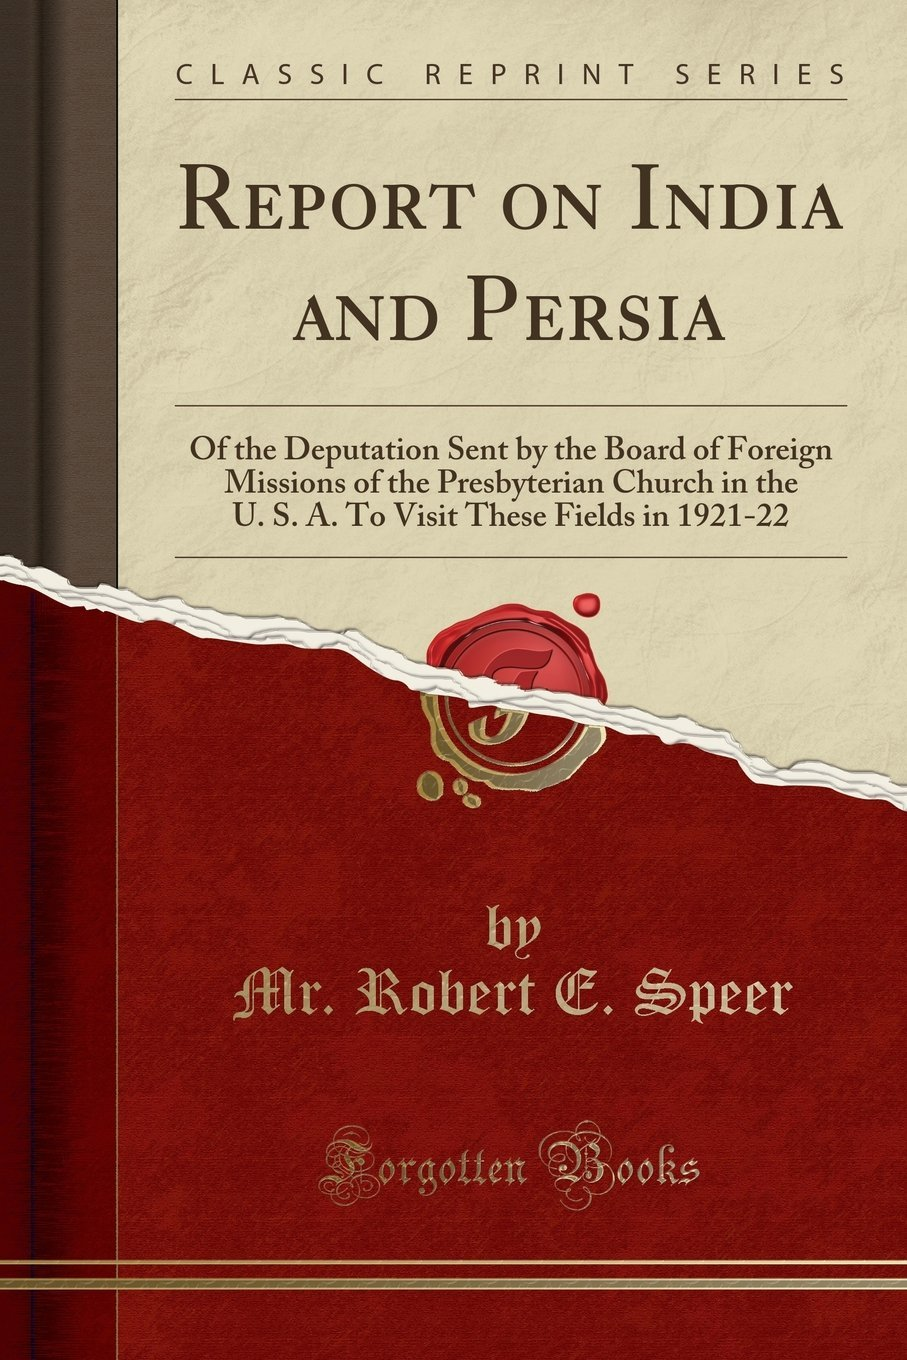 Download Report on India and Persia: Of the Deputation Sent by the Board of Foreign Missions of the Presbyterian Church in the U. S. A. To Visit These Fields in 1921-22 (Classic Reprint) pdf epub